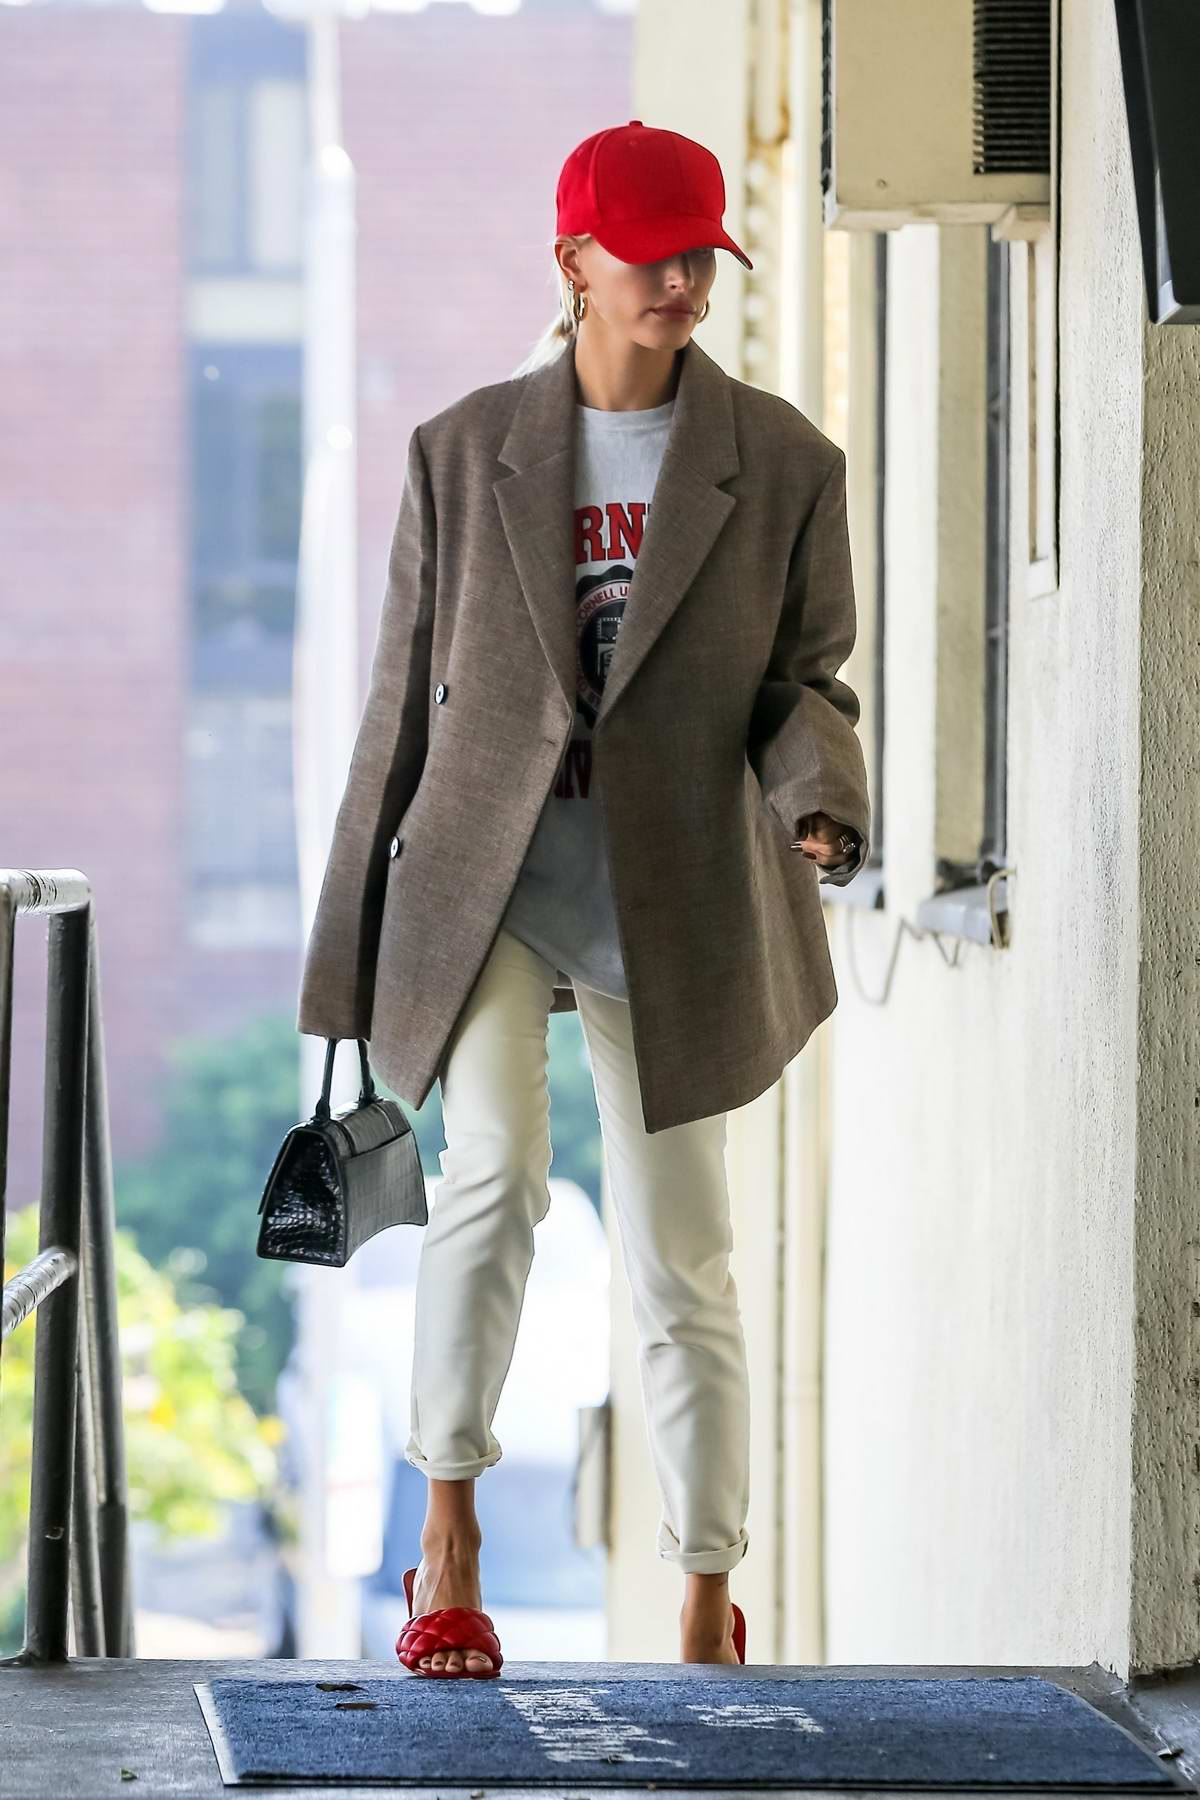 Hailey Baldwin Bieber rocking her style while arriving at her fashion designers' office in West Hollywood, Los Angeles